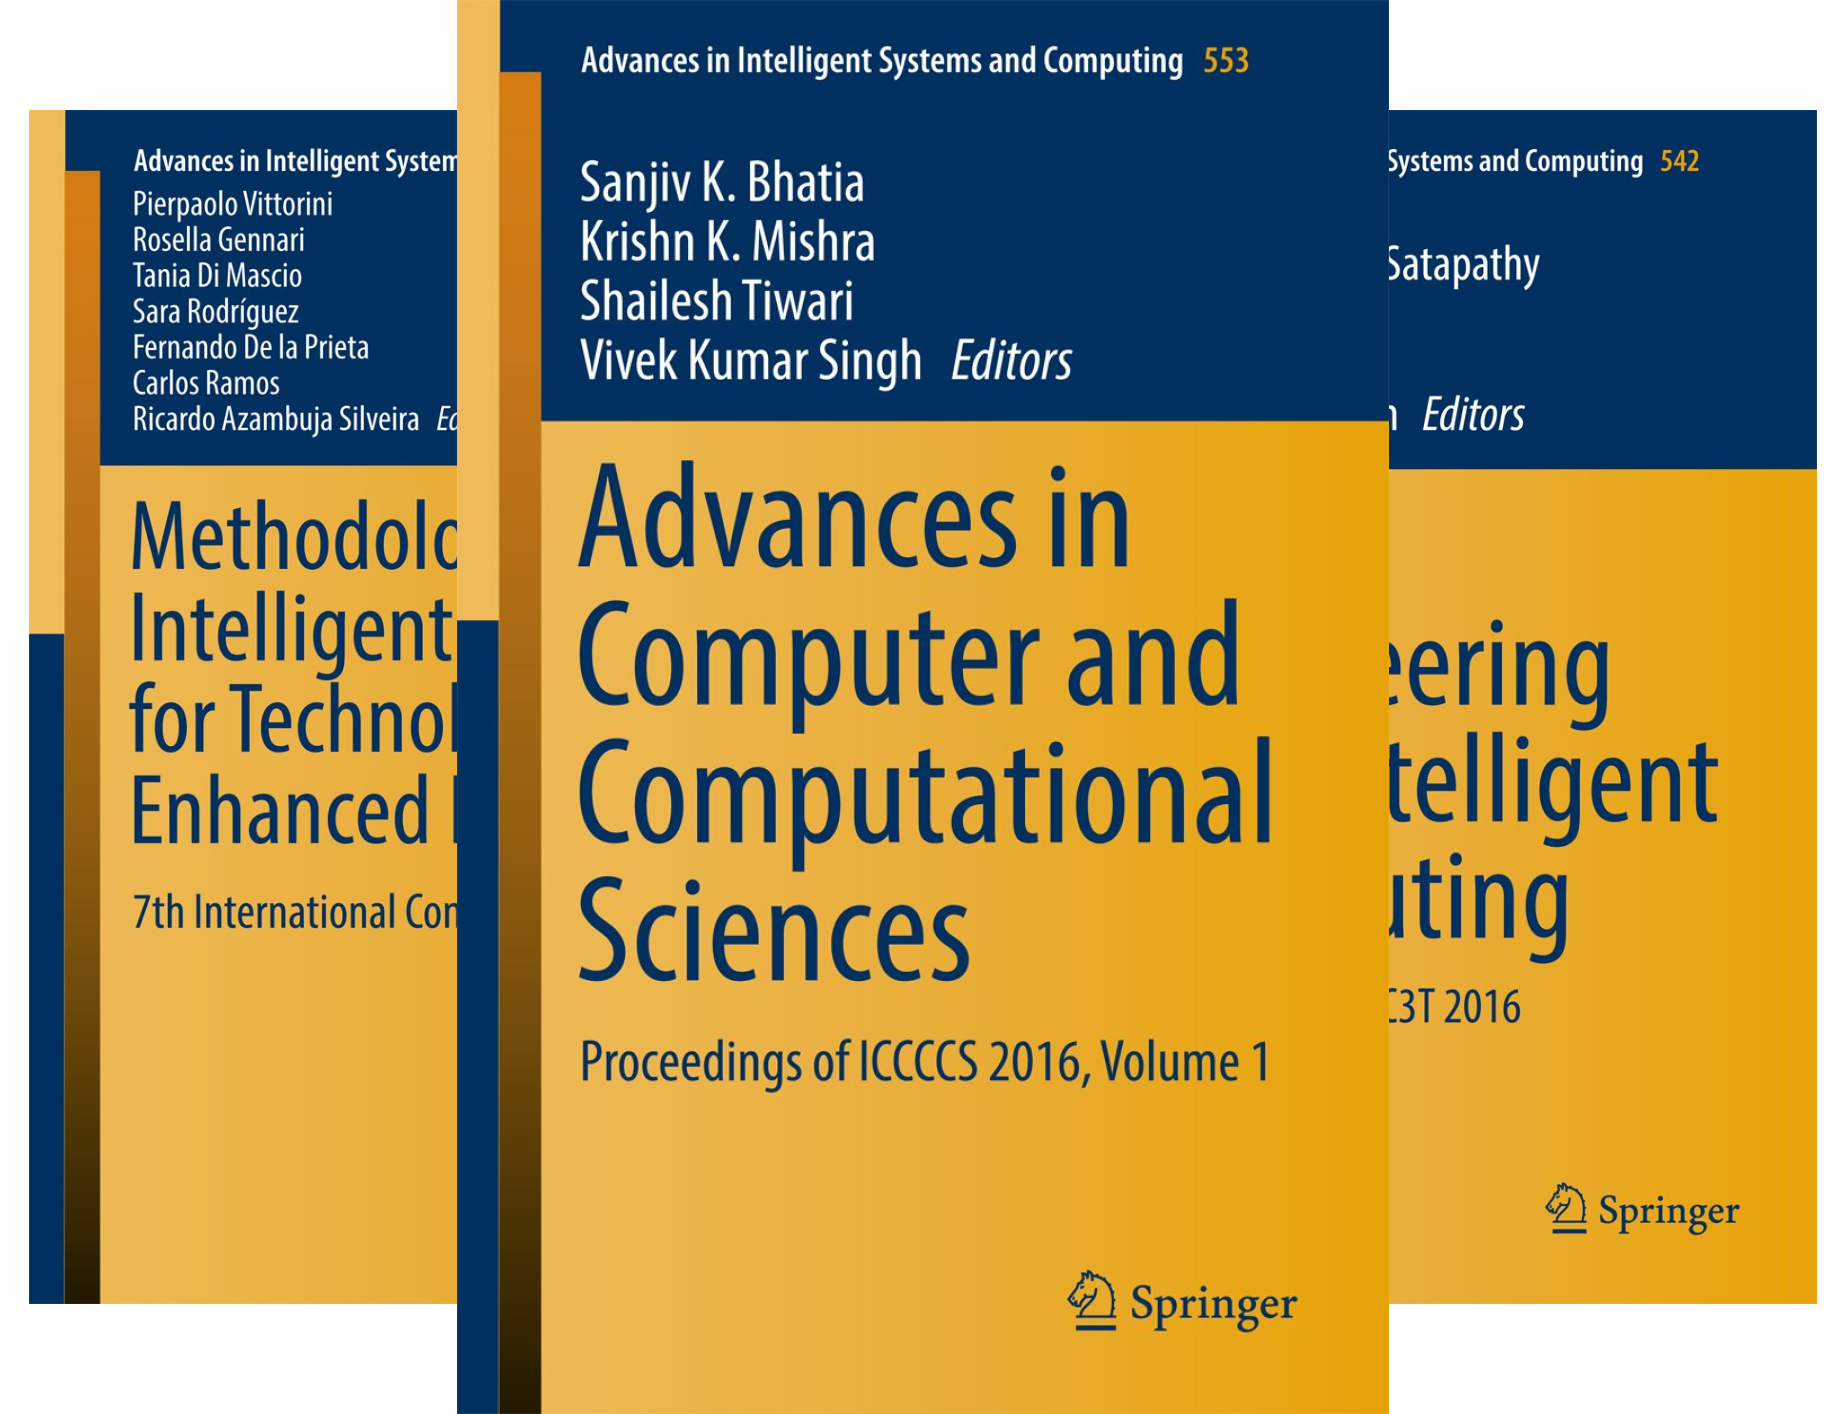 Advances in Intelligent Systems and Computing (151-200) (50 Book Series)